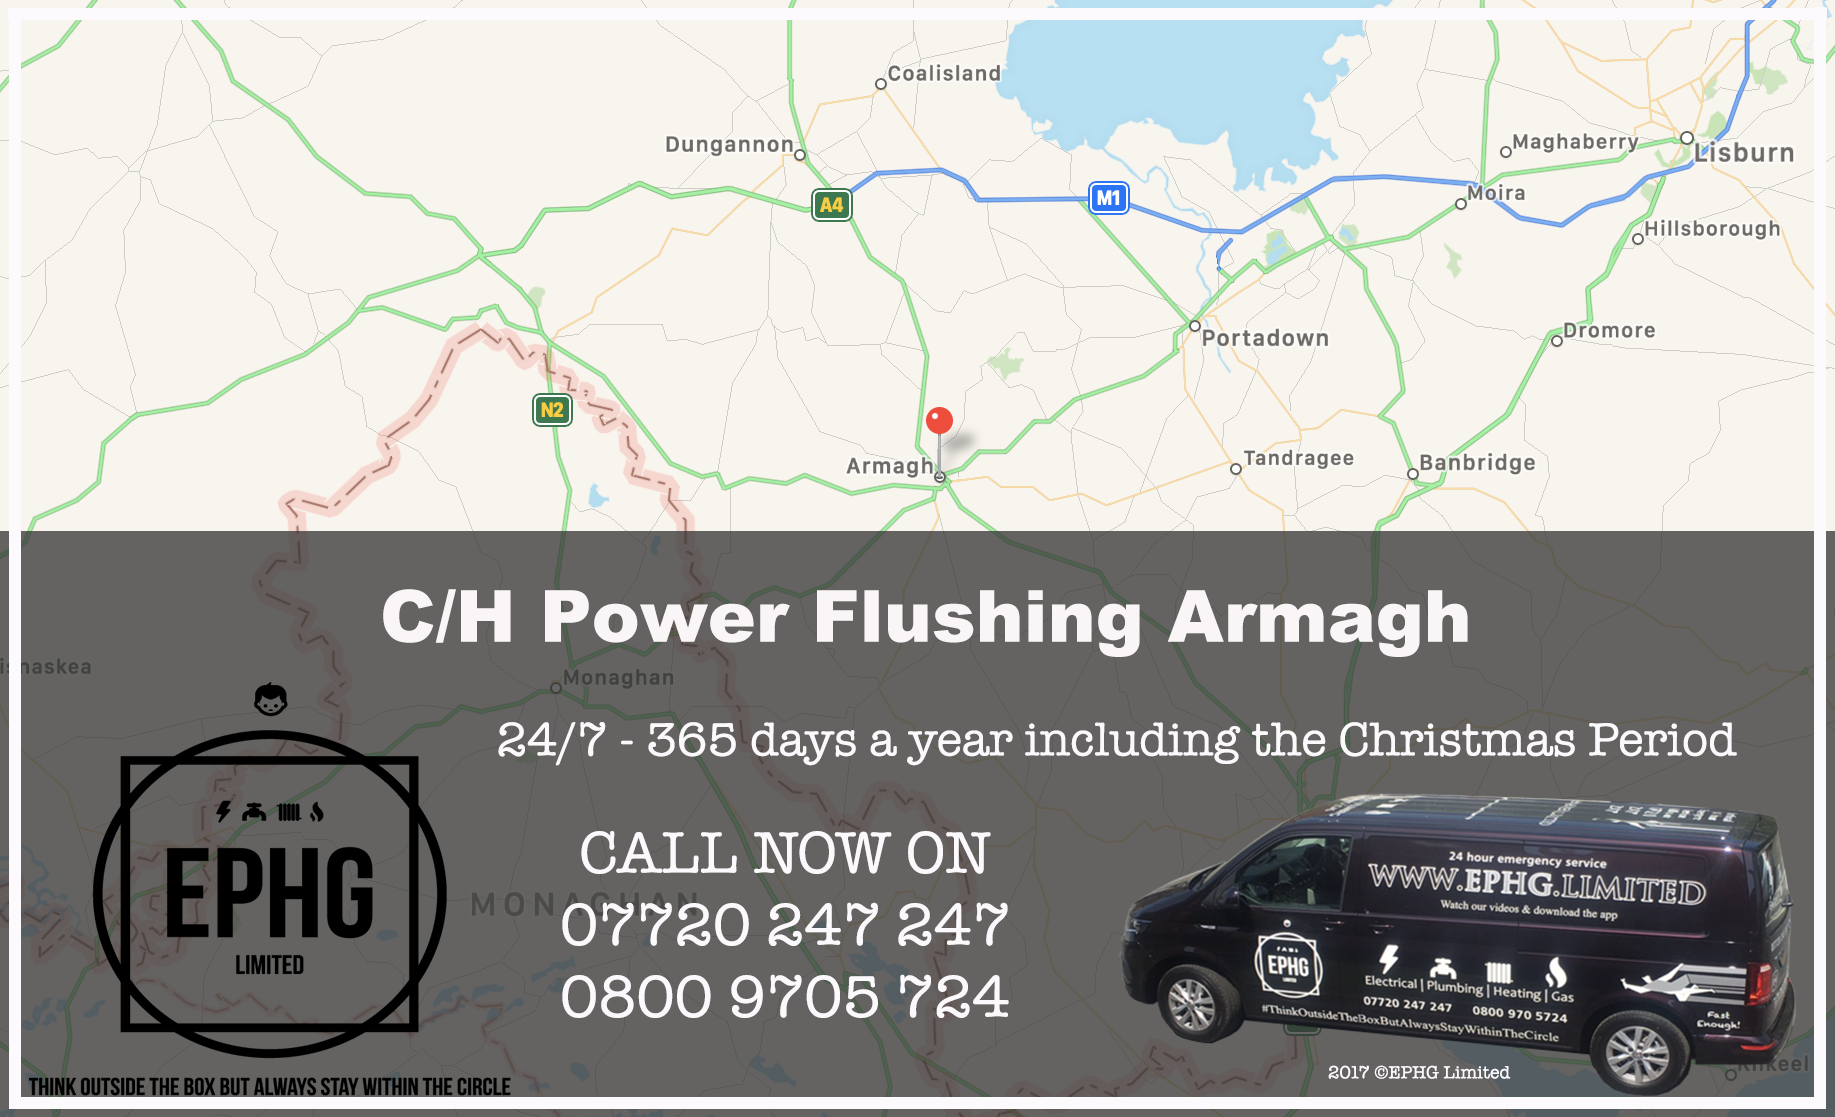 Central Heating Power Flush Armagh